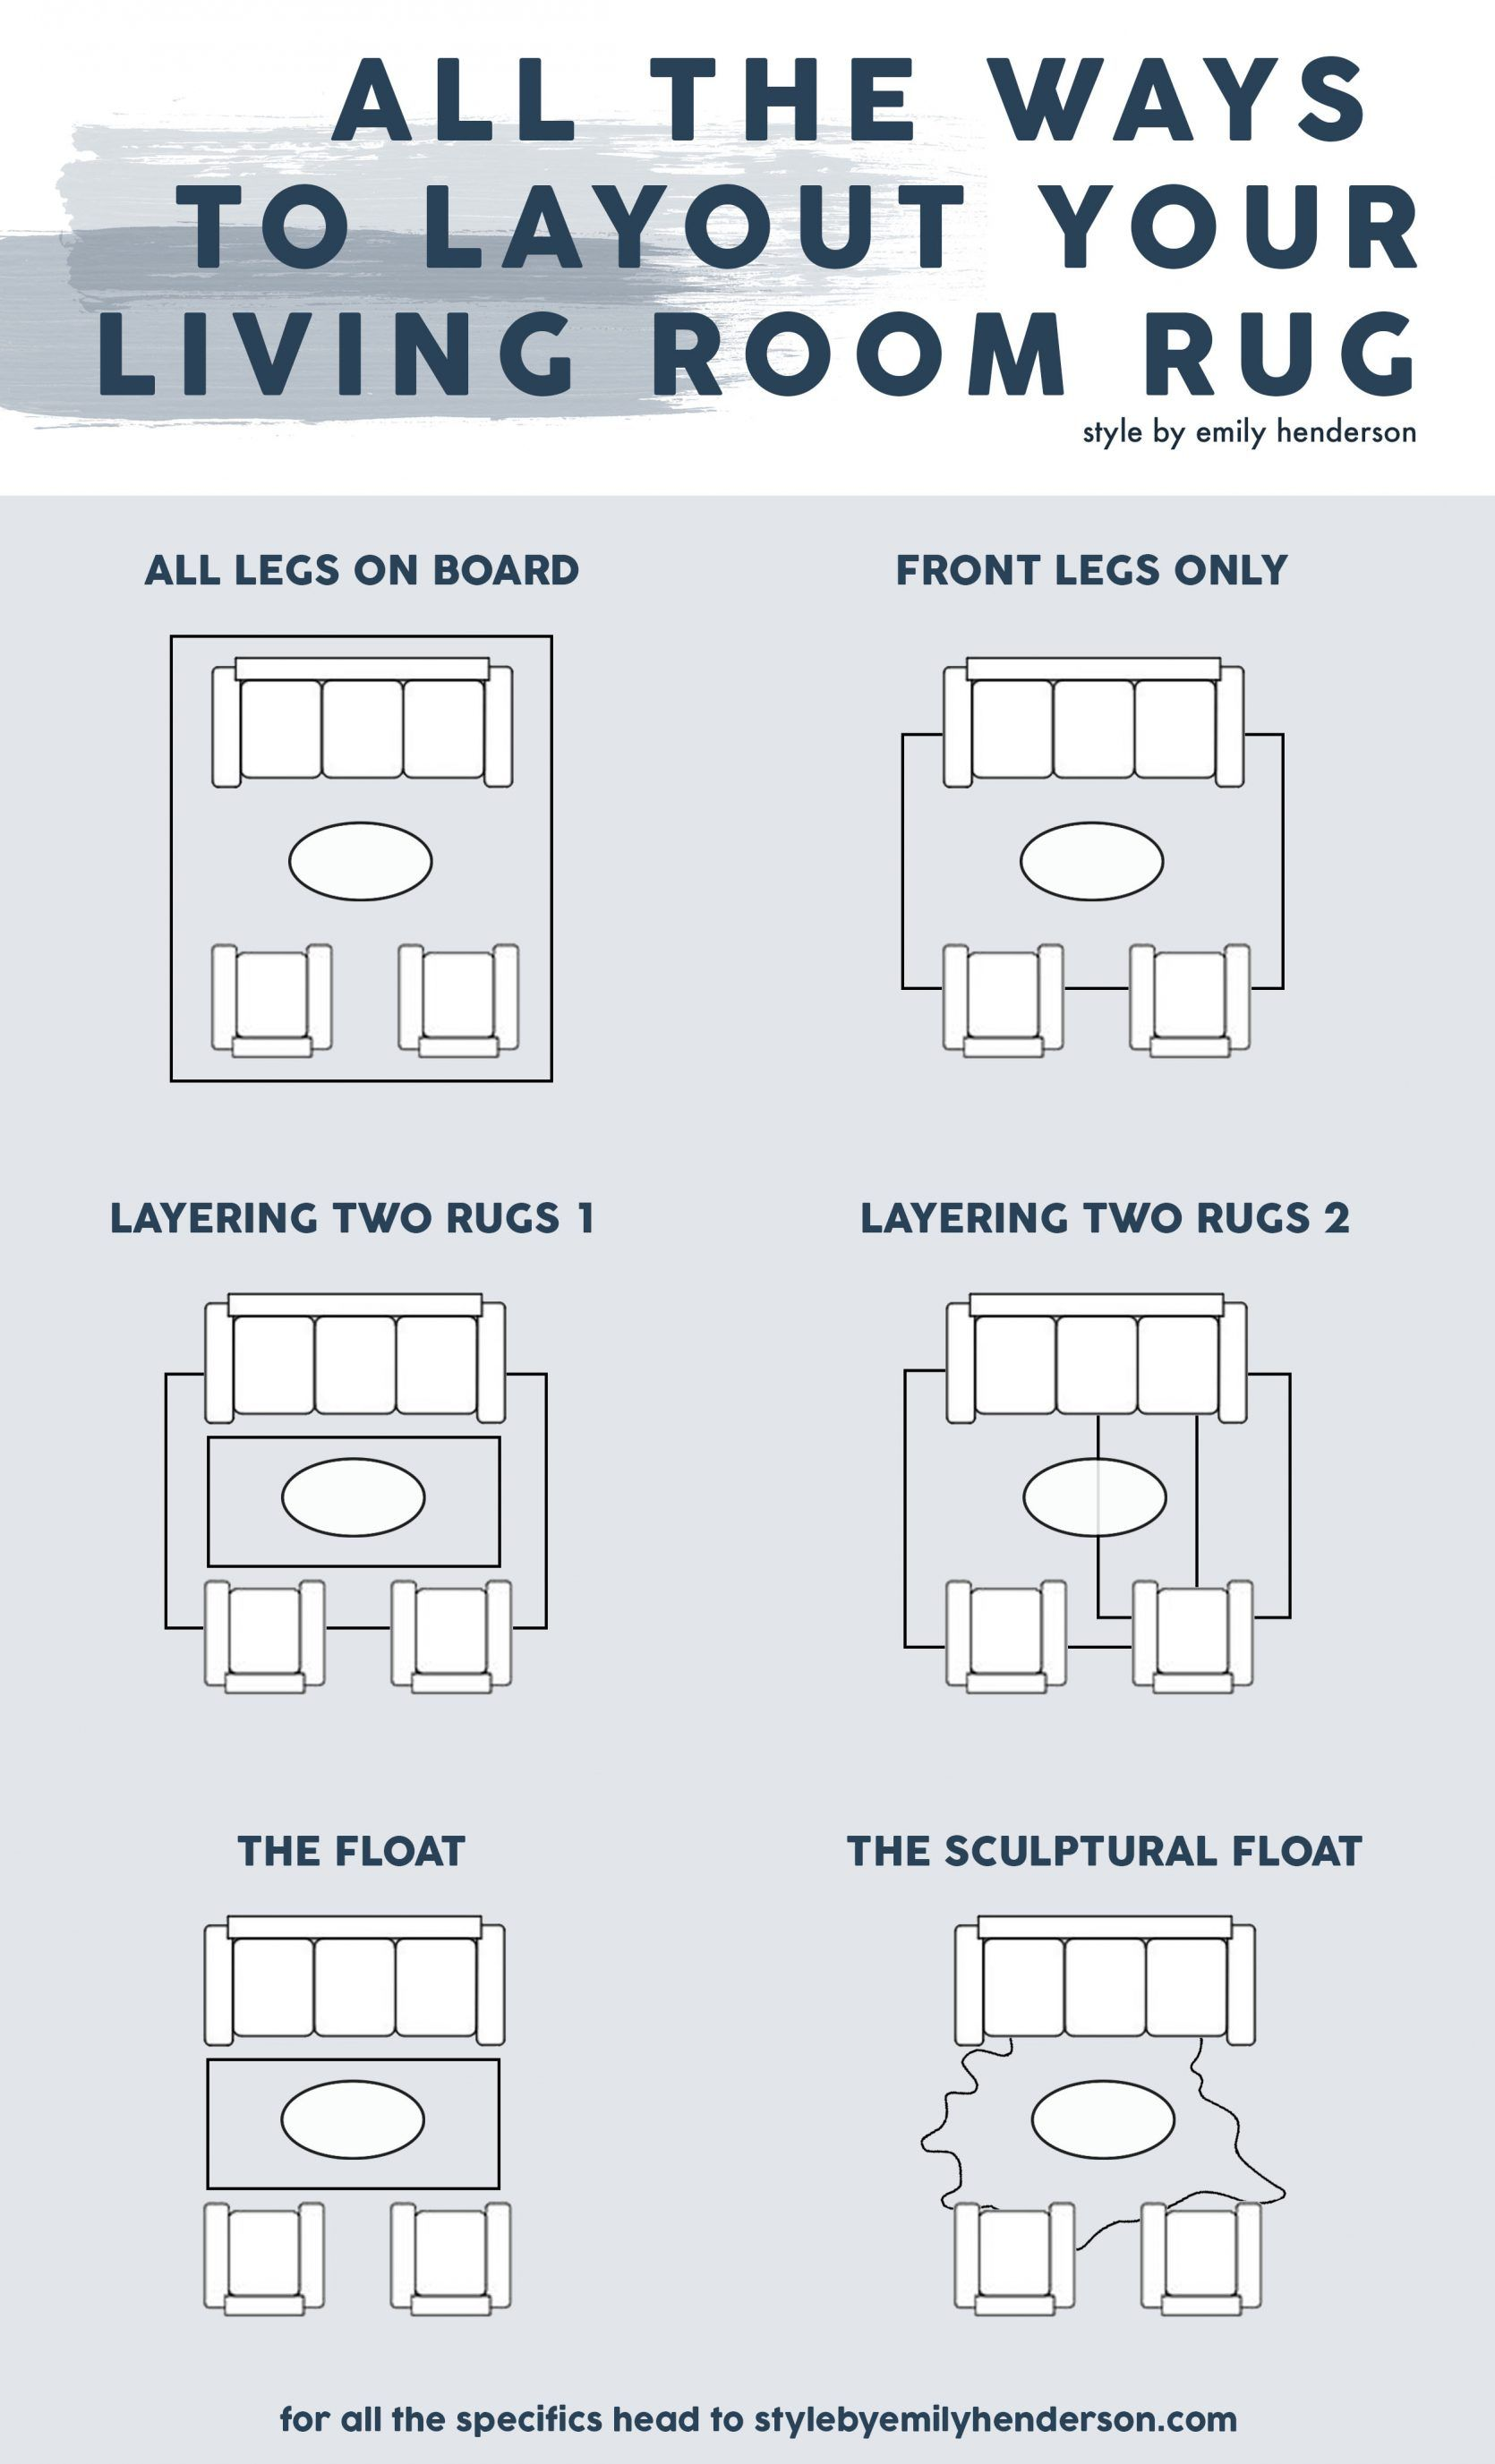 How To Choose The Right Rug Size For Your Living Room 5 Formulas Guaranteed To Work Emily Henderson In 2020 Living Room Rug Placement Living Room Rug Size Rugs In Living Room